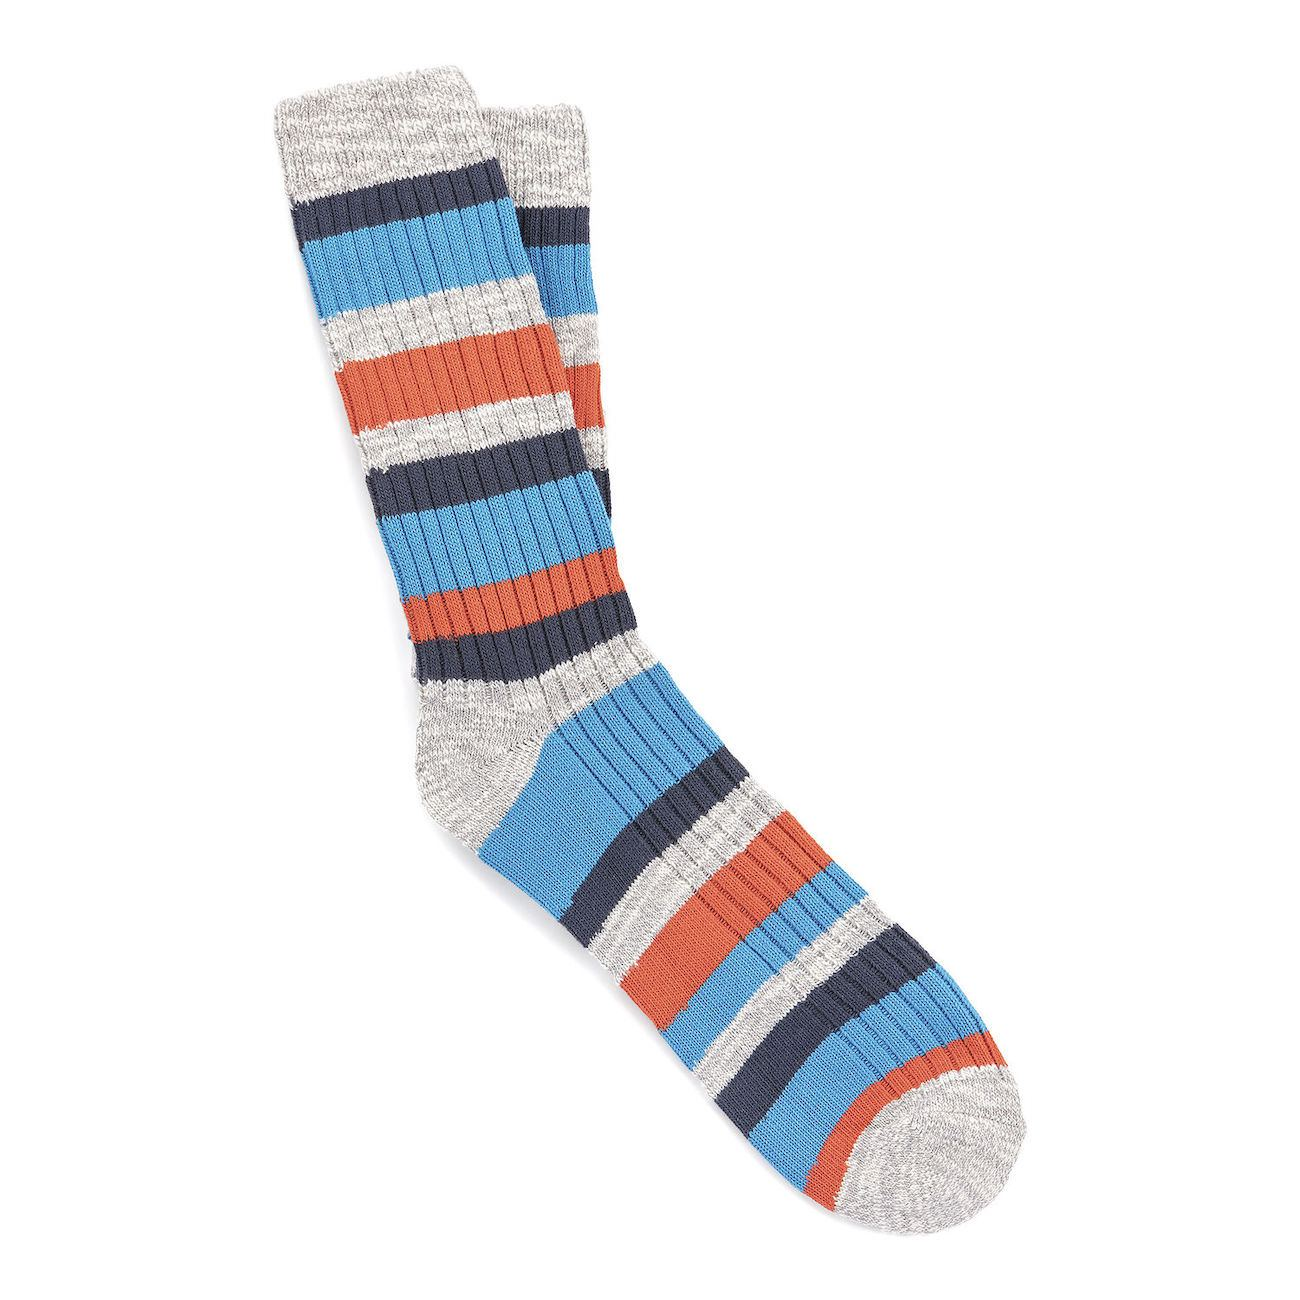 Birkenstock Socks, Slub Stripes M, Grey mel, 39-41 EU Socks Birkenstock Socks Grey mel 39-41 EU